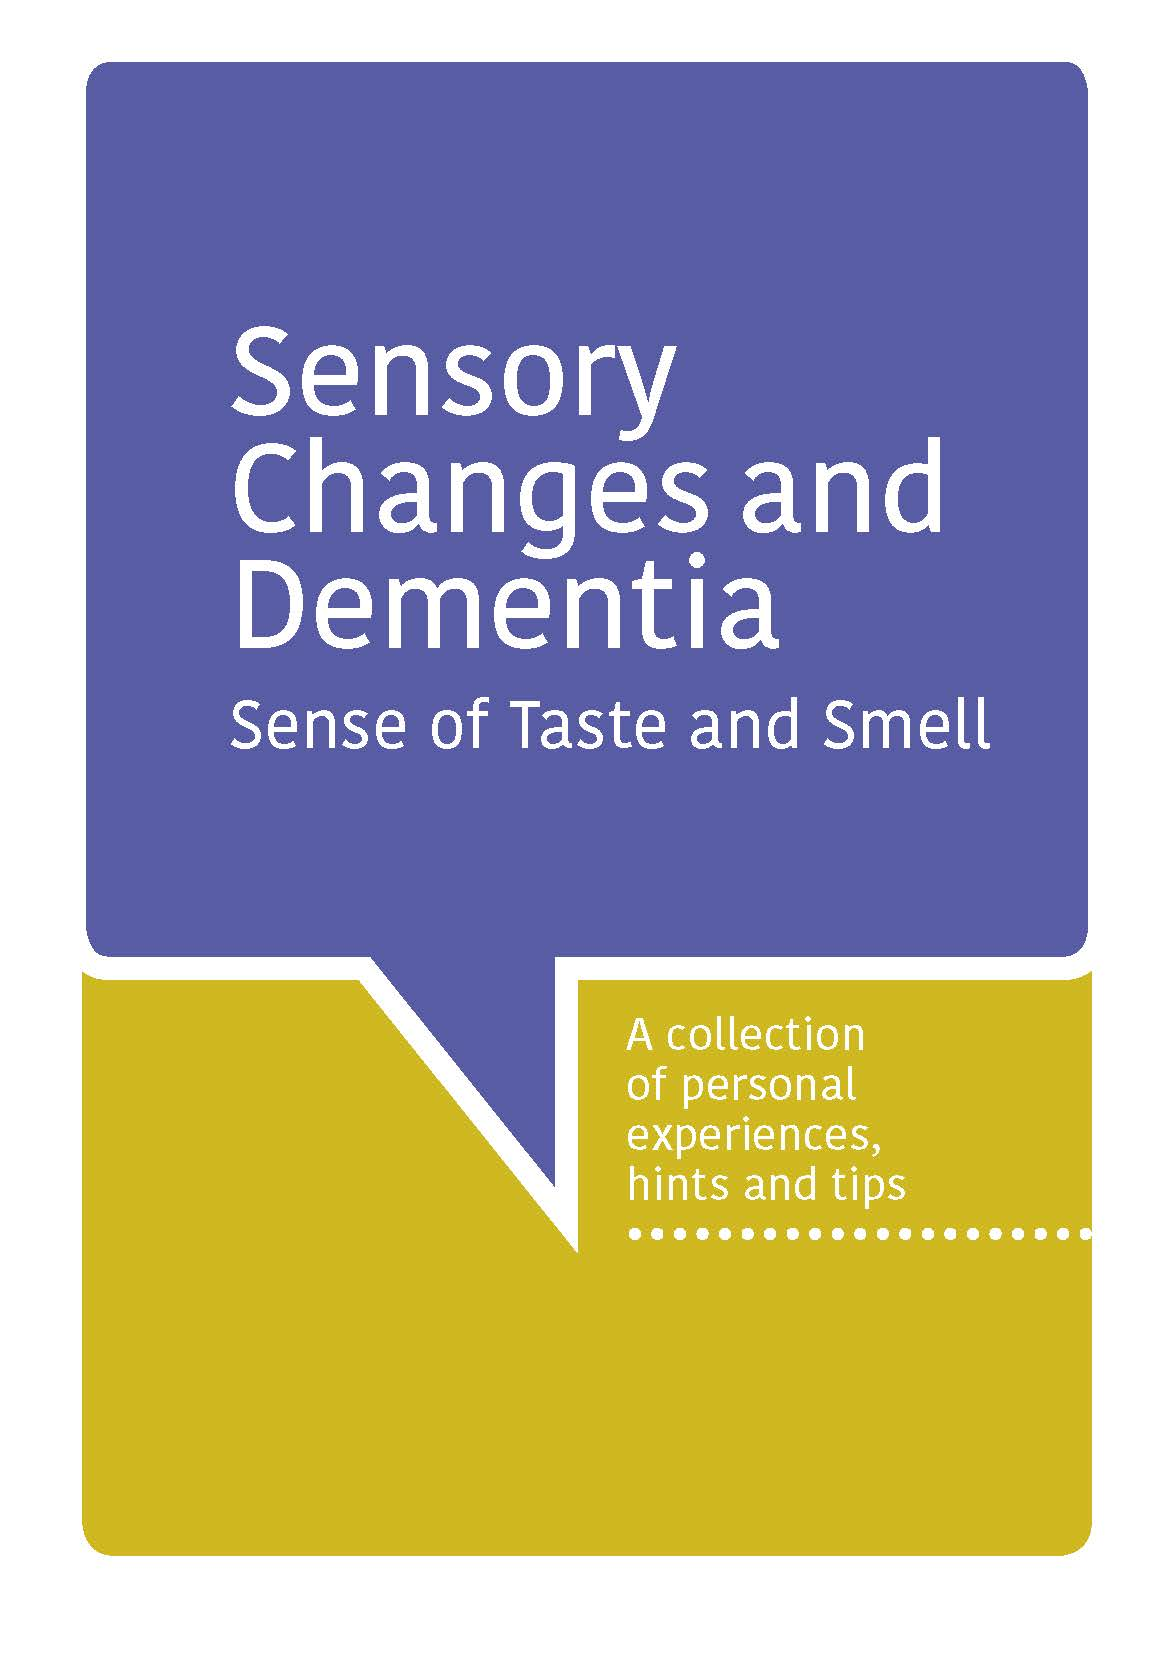 Sensory Changes and Dementia - Sense of Taste and Smell